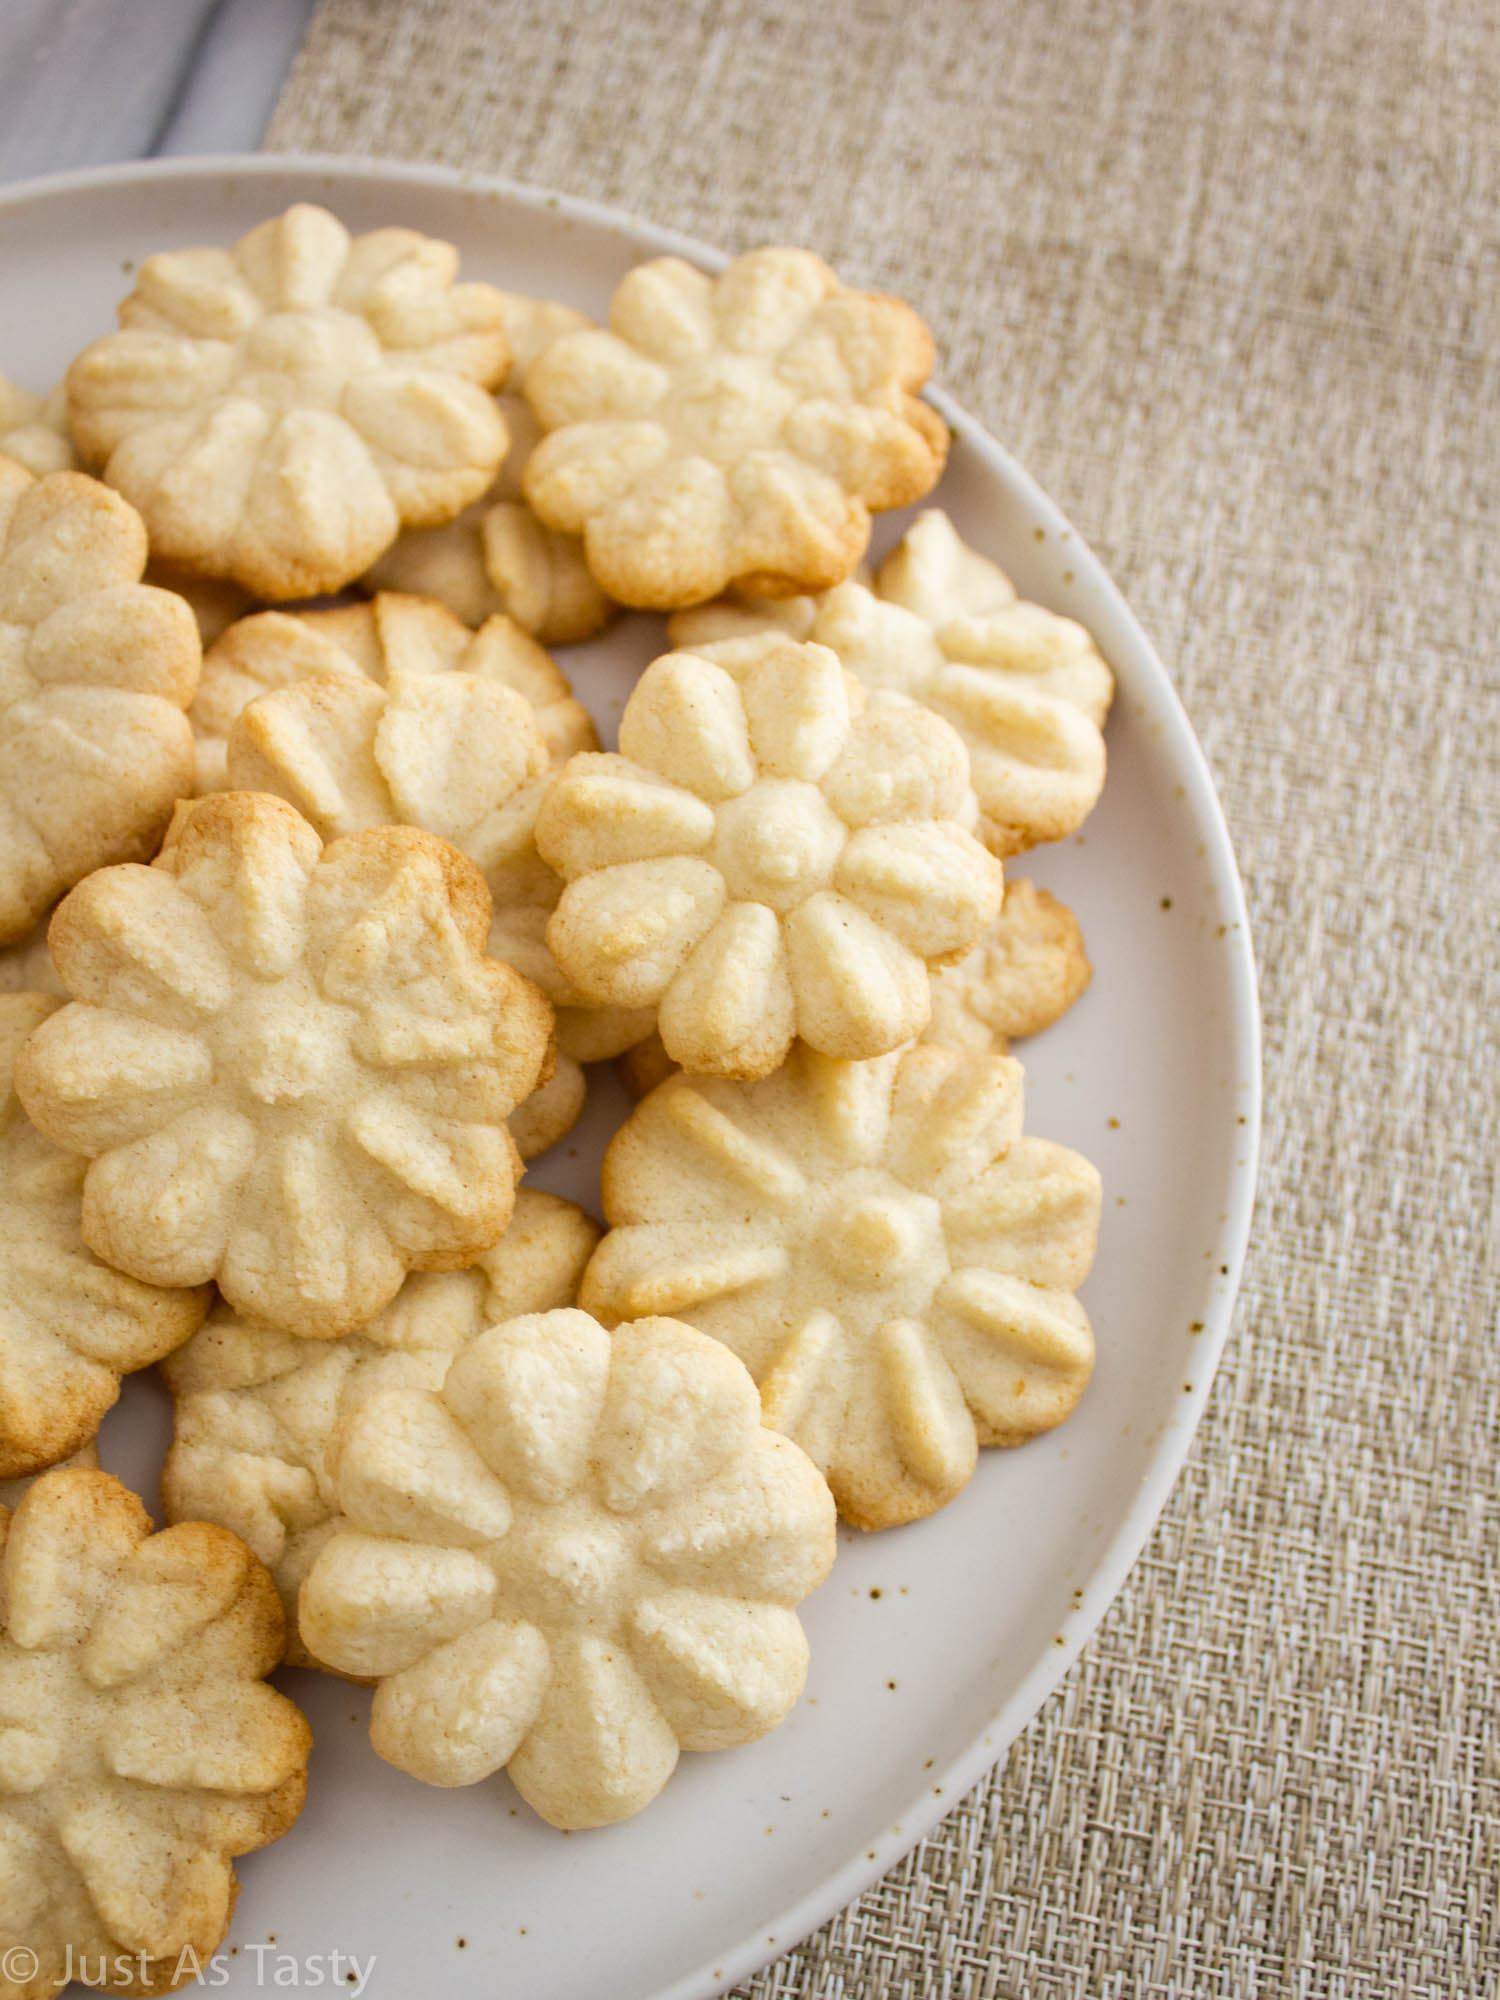 Plate full of flower-shaped buttery spritz cookies.